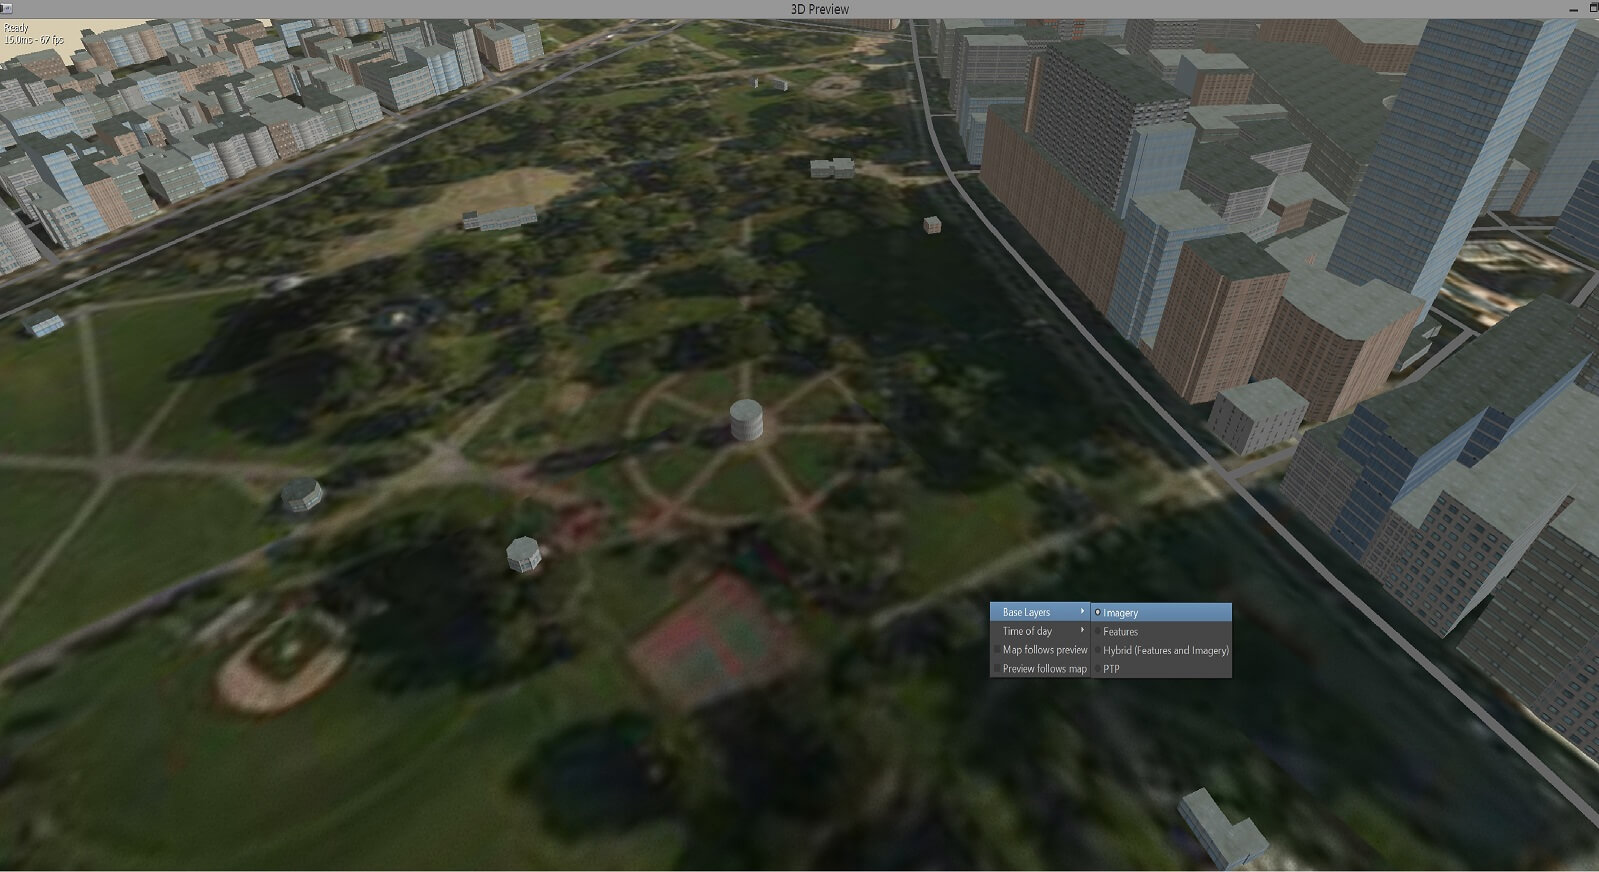 Conform Ground Texturing from Imagery